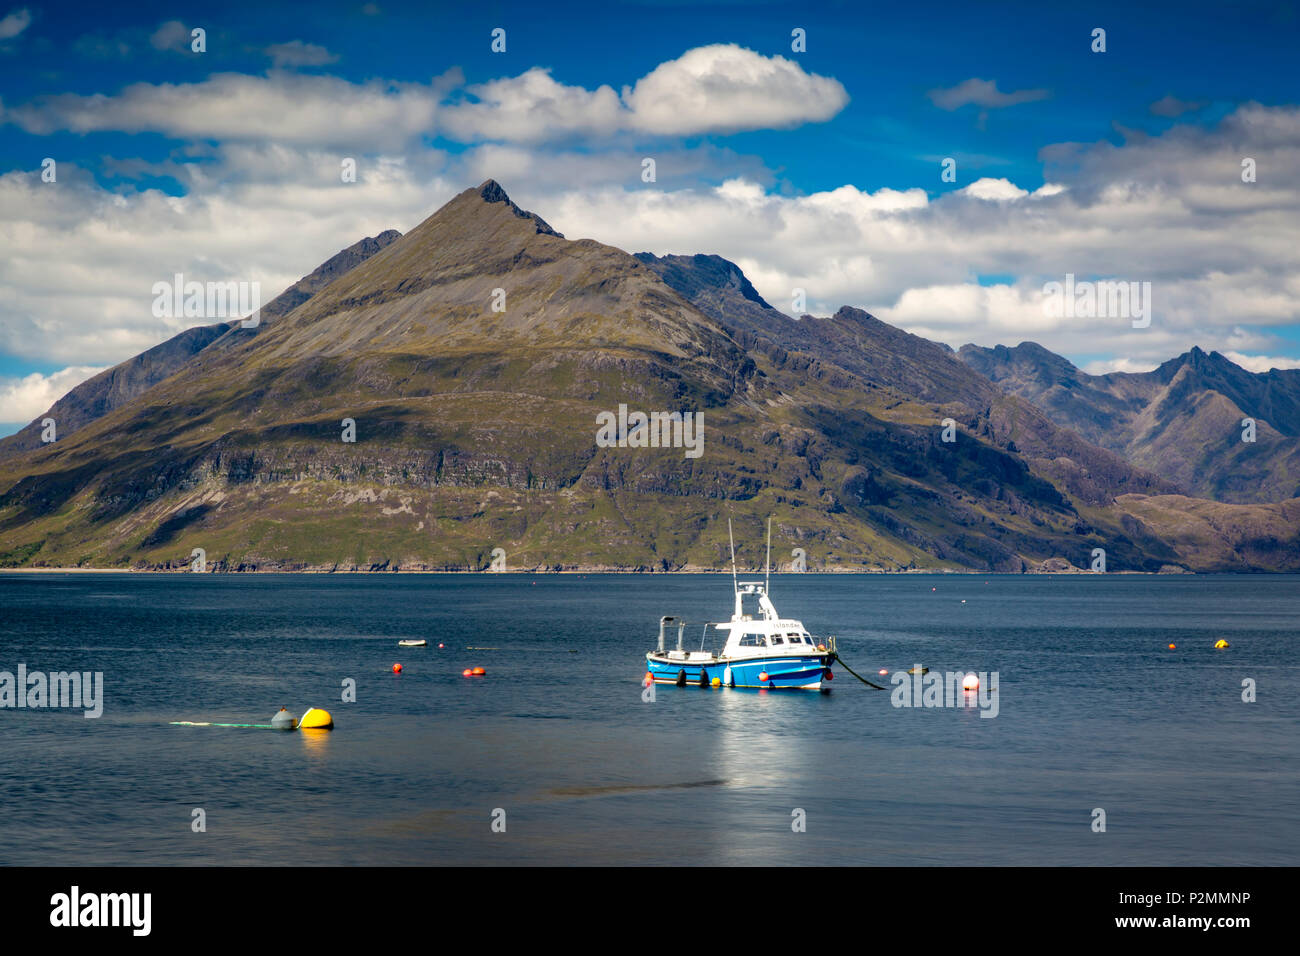 Fishing boat and the Black Cuillin Mountains from Elgol, Isle of Skye, Scotland, UK - Stock Image